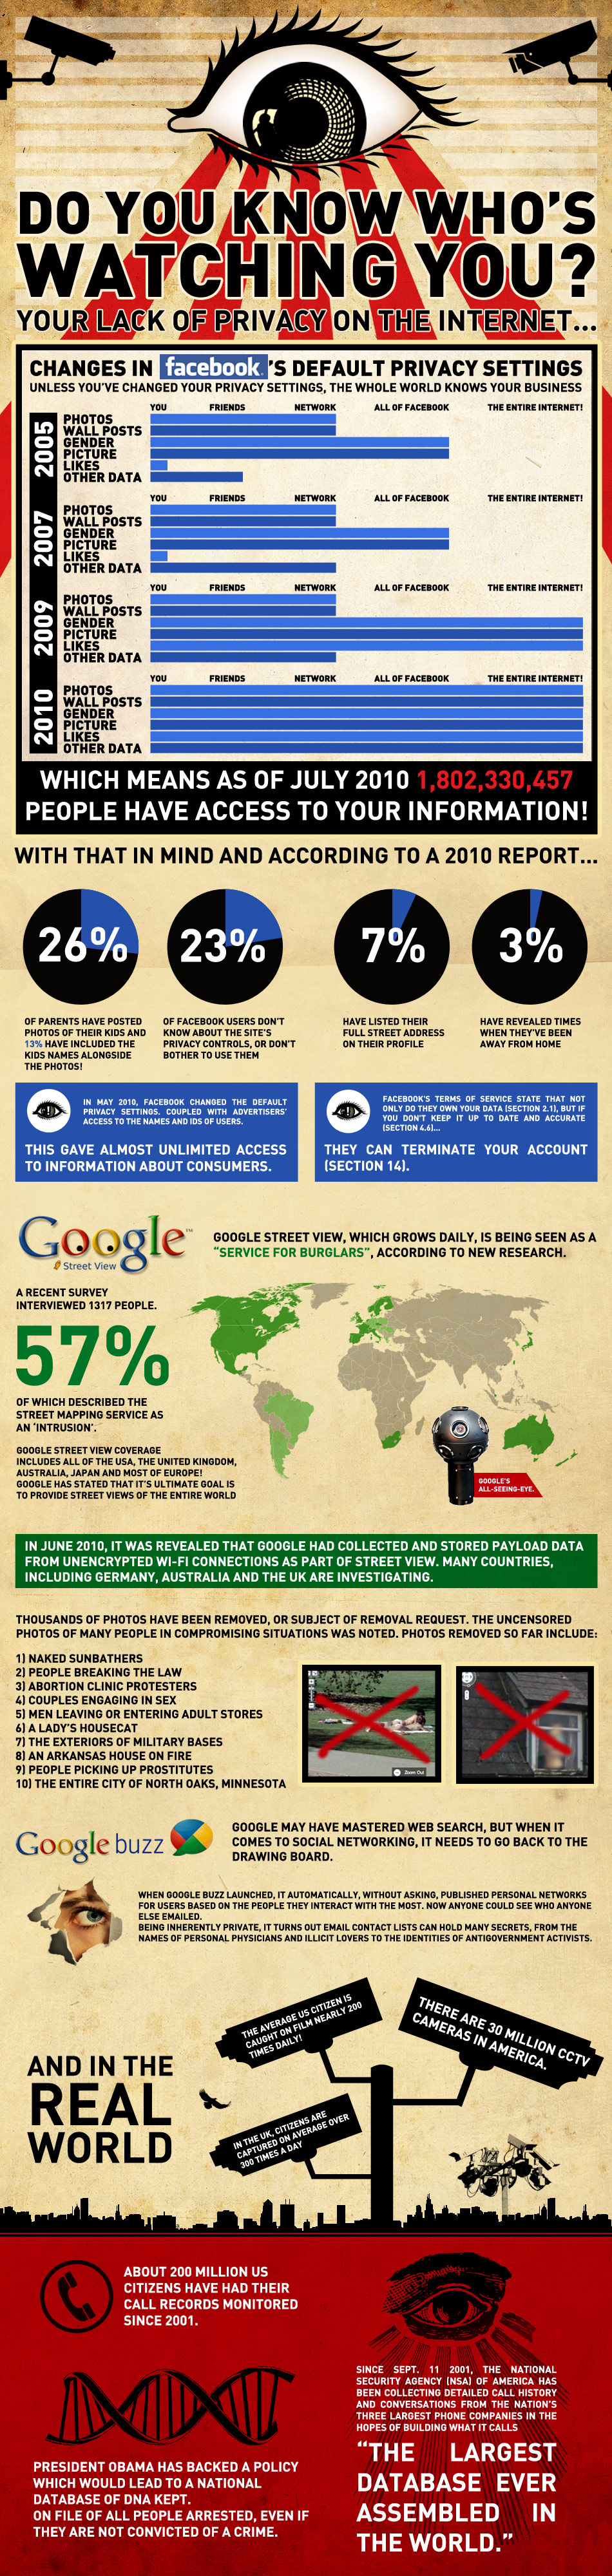 google privacy Google designed g suite to meet stringent privacy and security standards based on industry best practices in addition to strong contractual commitments regarding data ownership, data use, security, transparency, and accountability, we give you the tools you need to help meet your compliance and reporting requirements.